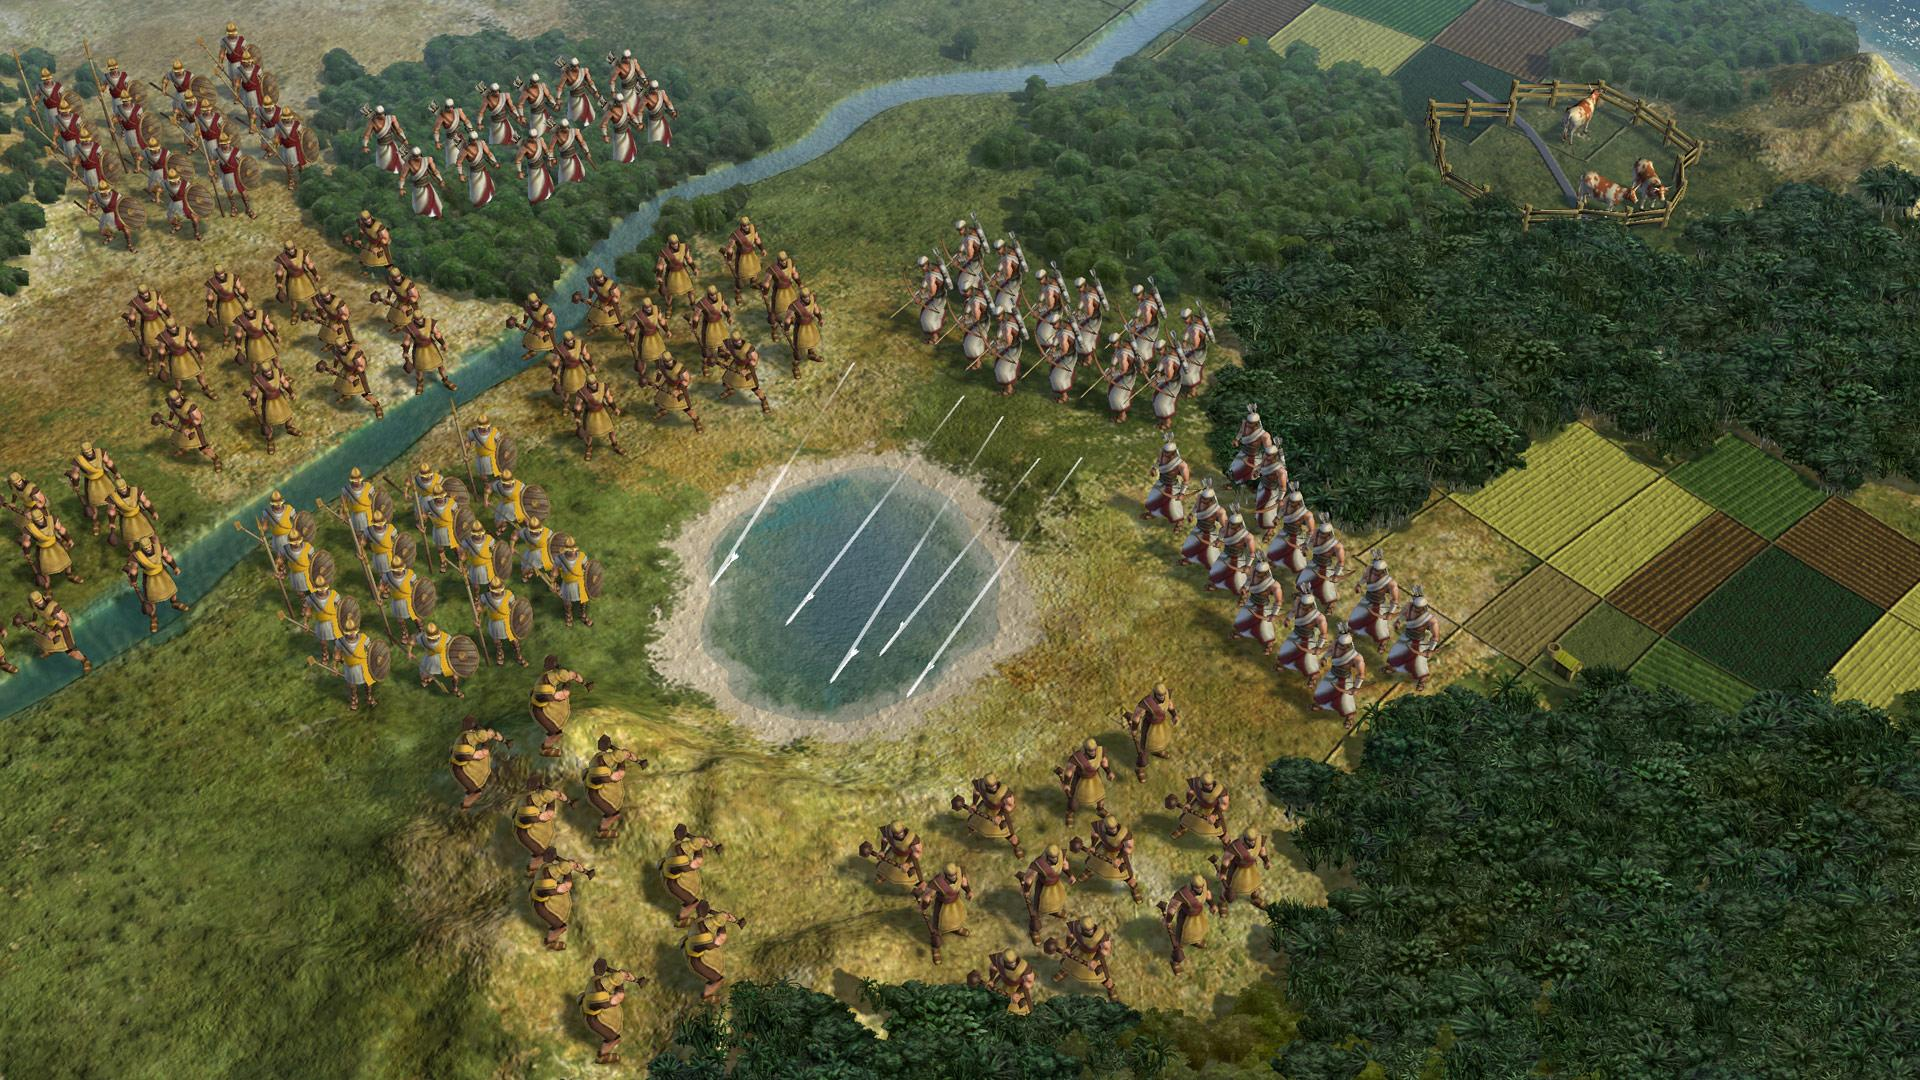 The tiny humans in Civilization V are totally fine though. My favourite victory is the one where you conquer all the other civilizations. Peace out.